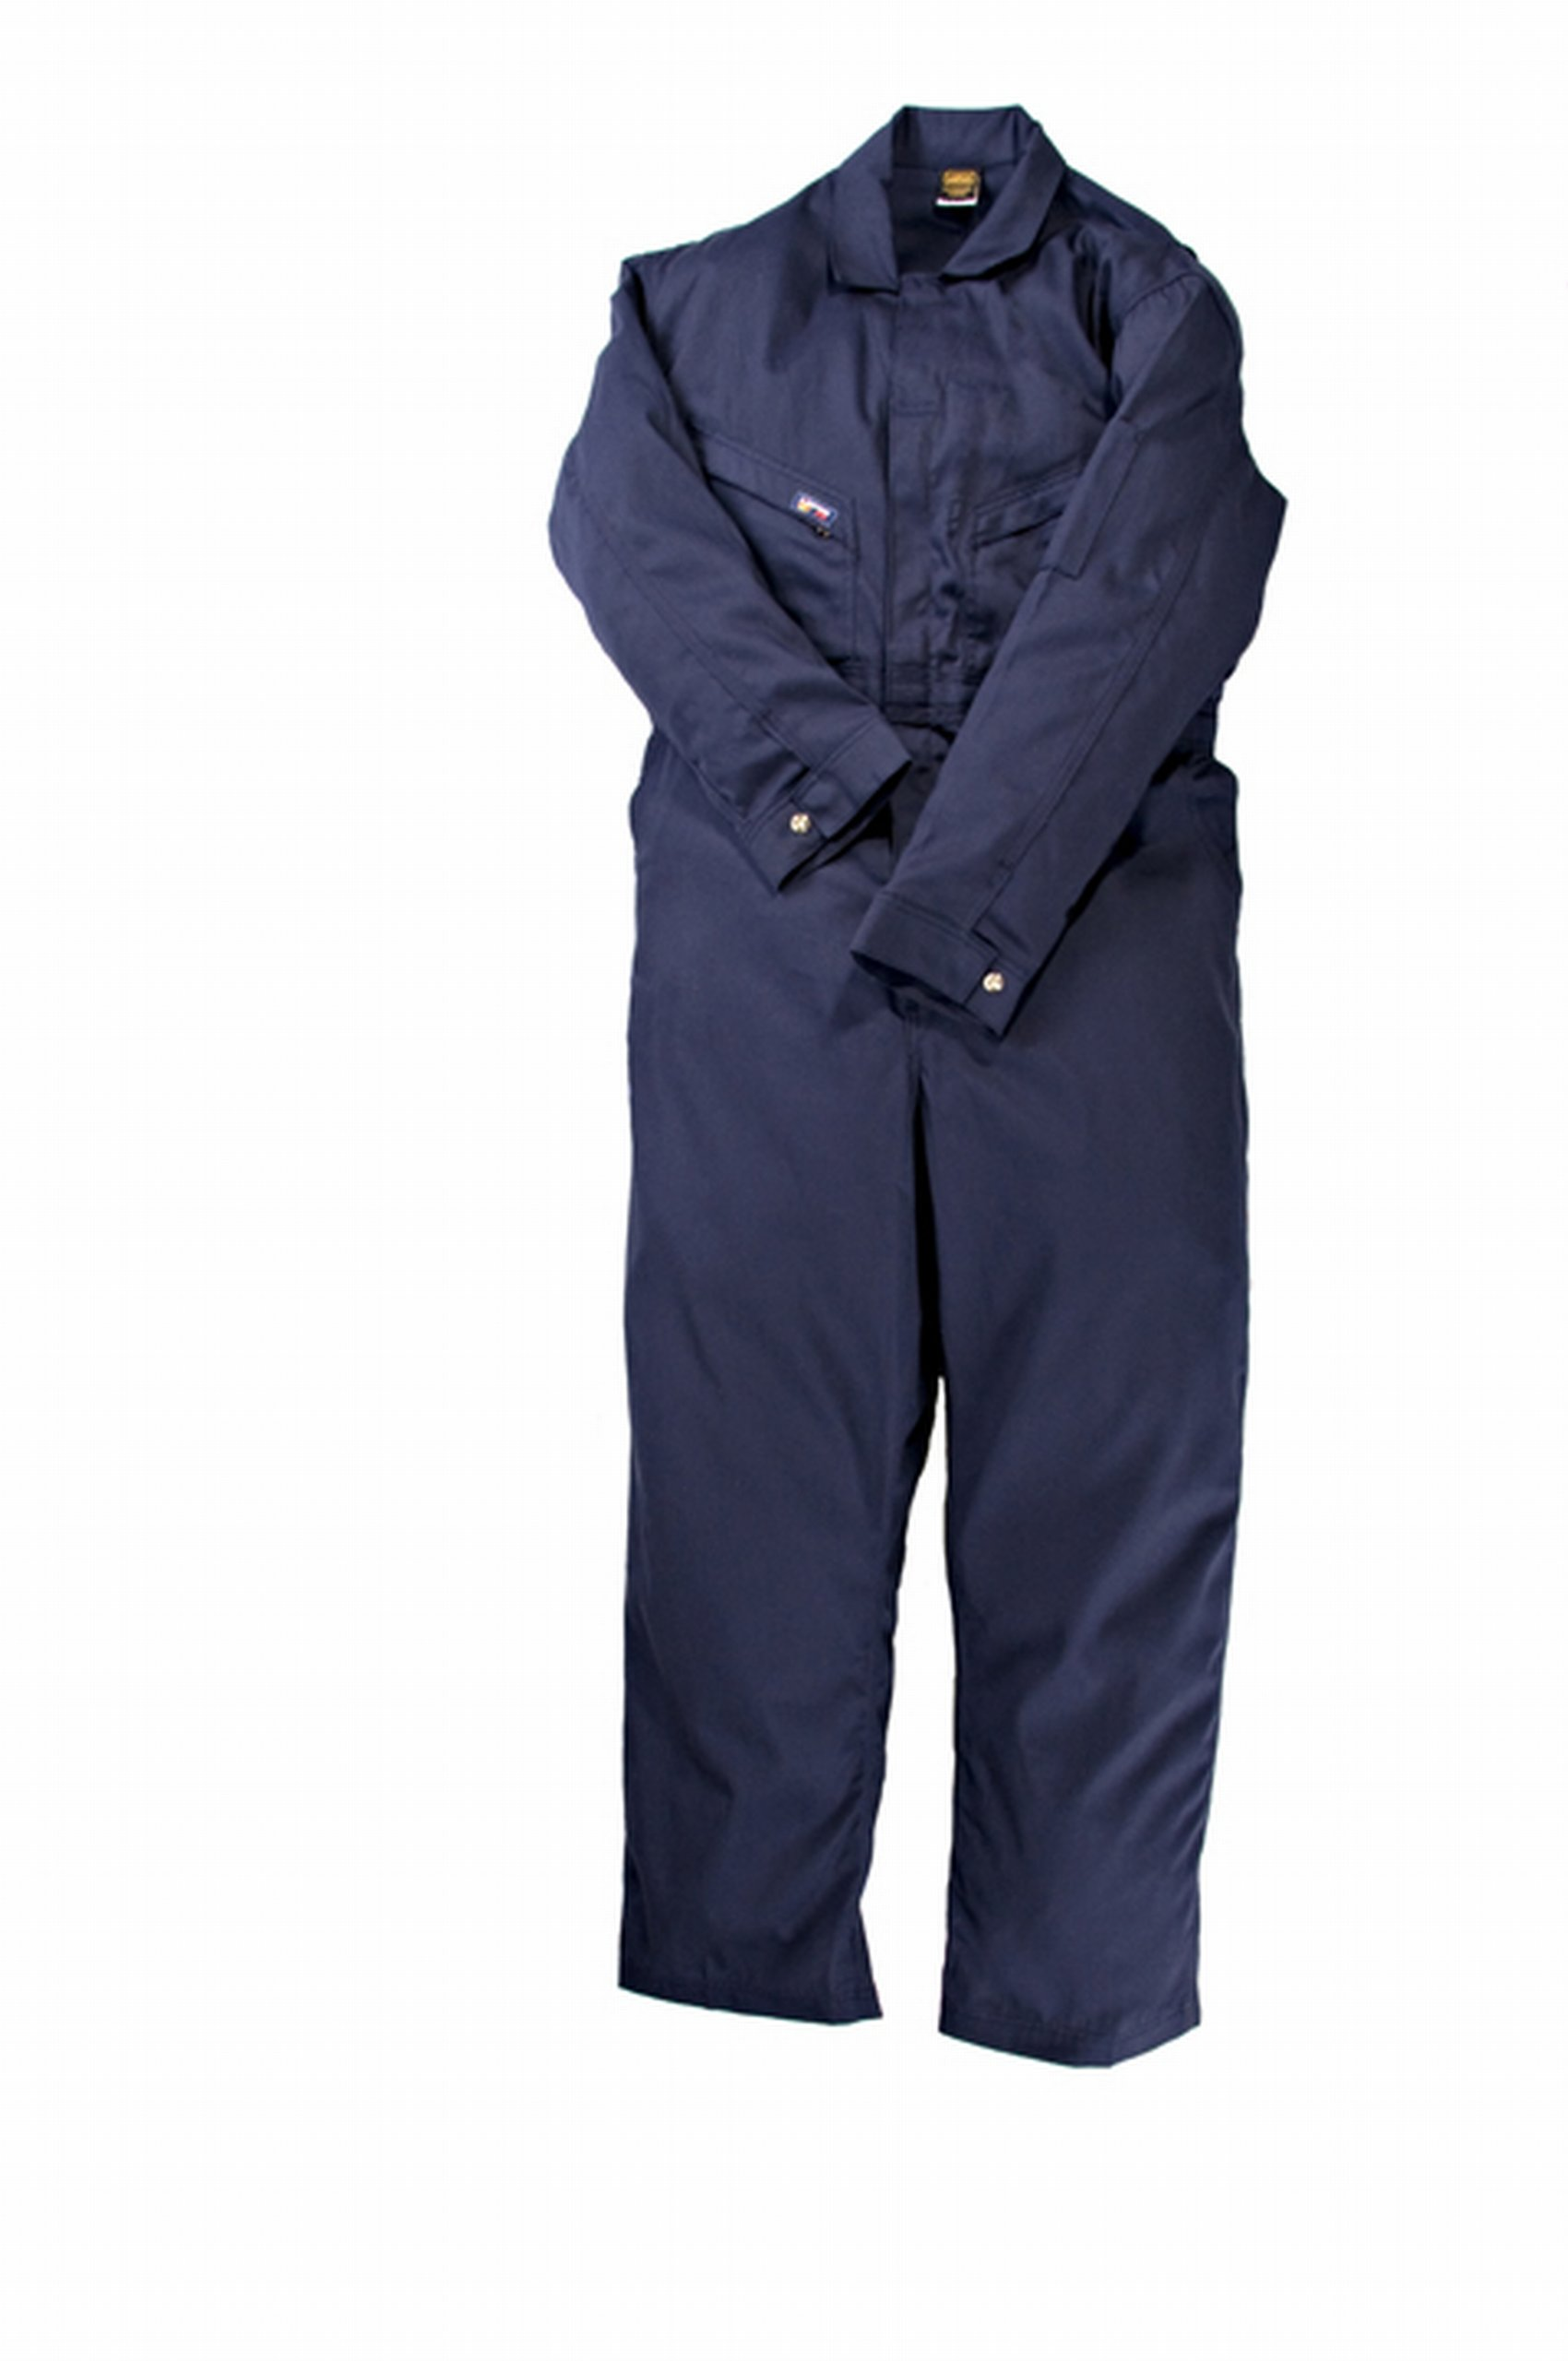 LAPCO CVFRD7NY-5XL RG Lightweight 100-Percent Cotton Flame Resistant Deluxe Coverall, Navy, 5X-Large, Regular